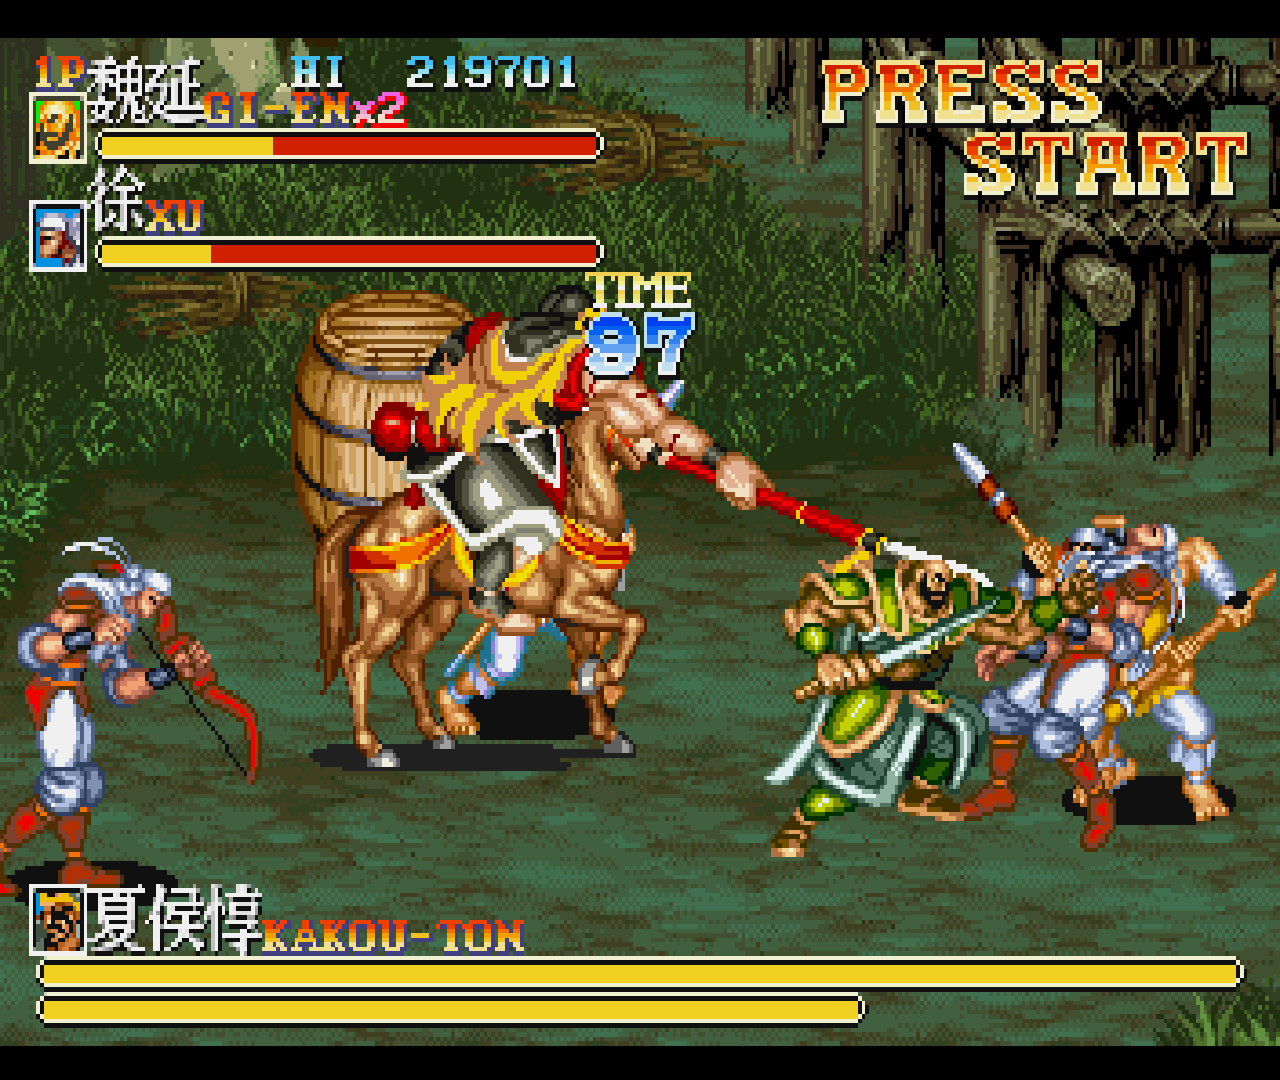 Figure 3 - Boss fight on the second stage, and the health bars keep getting longer